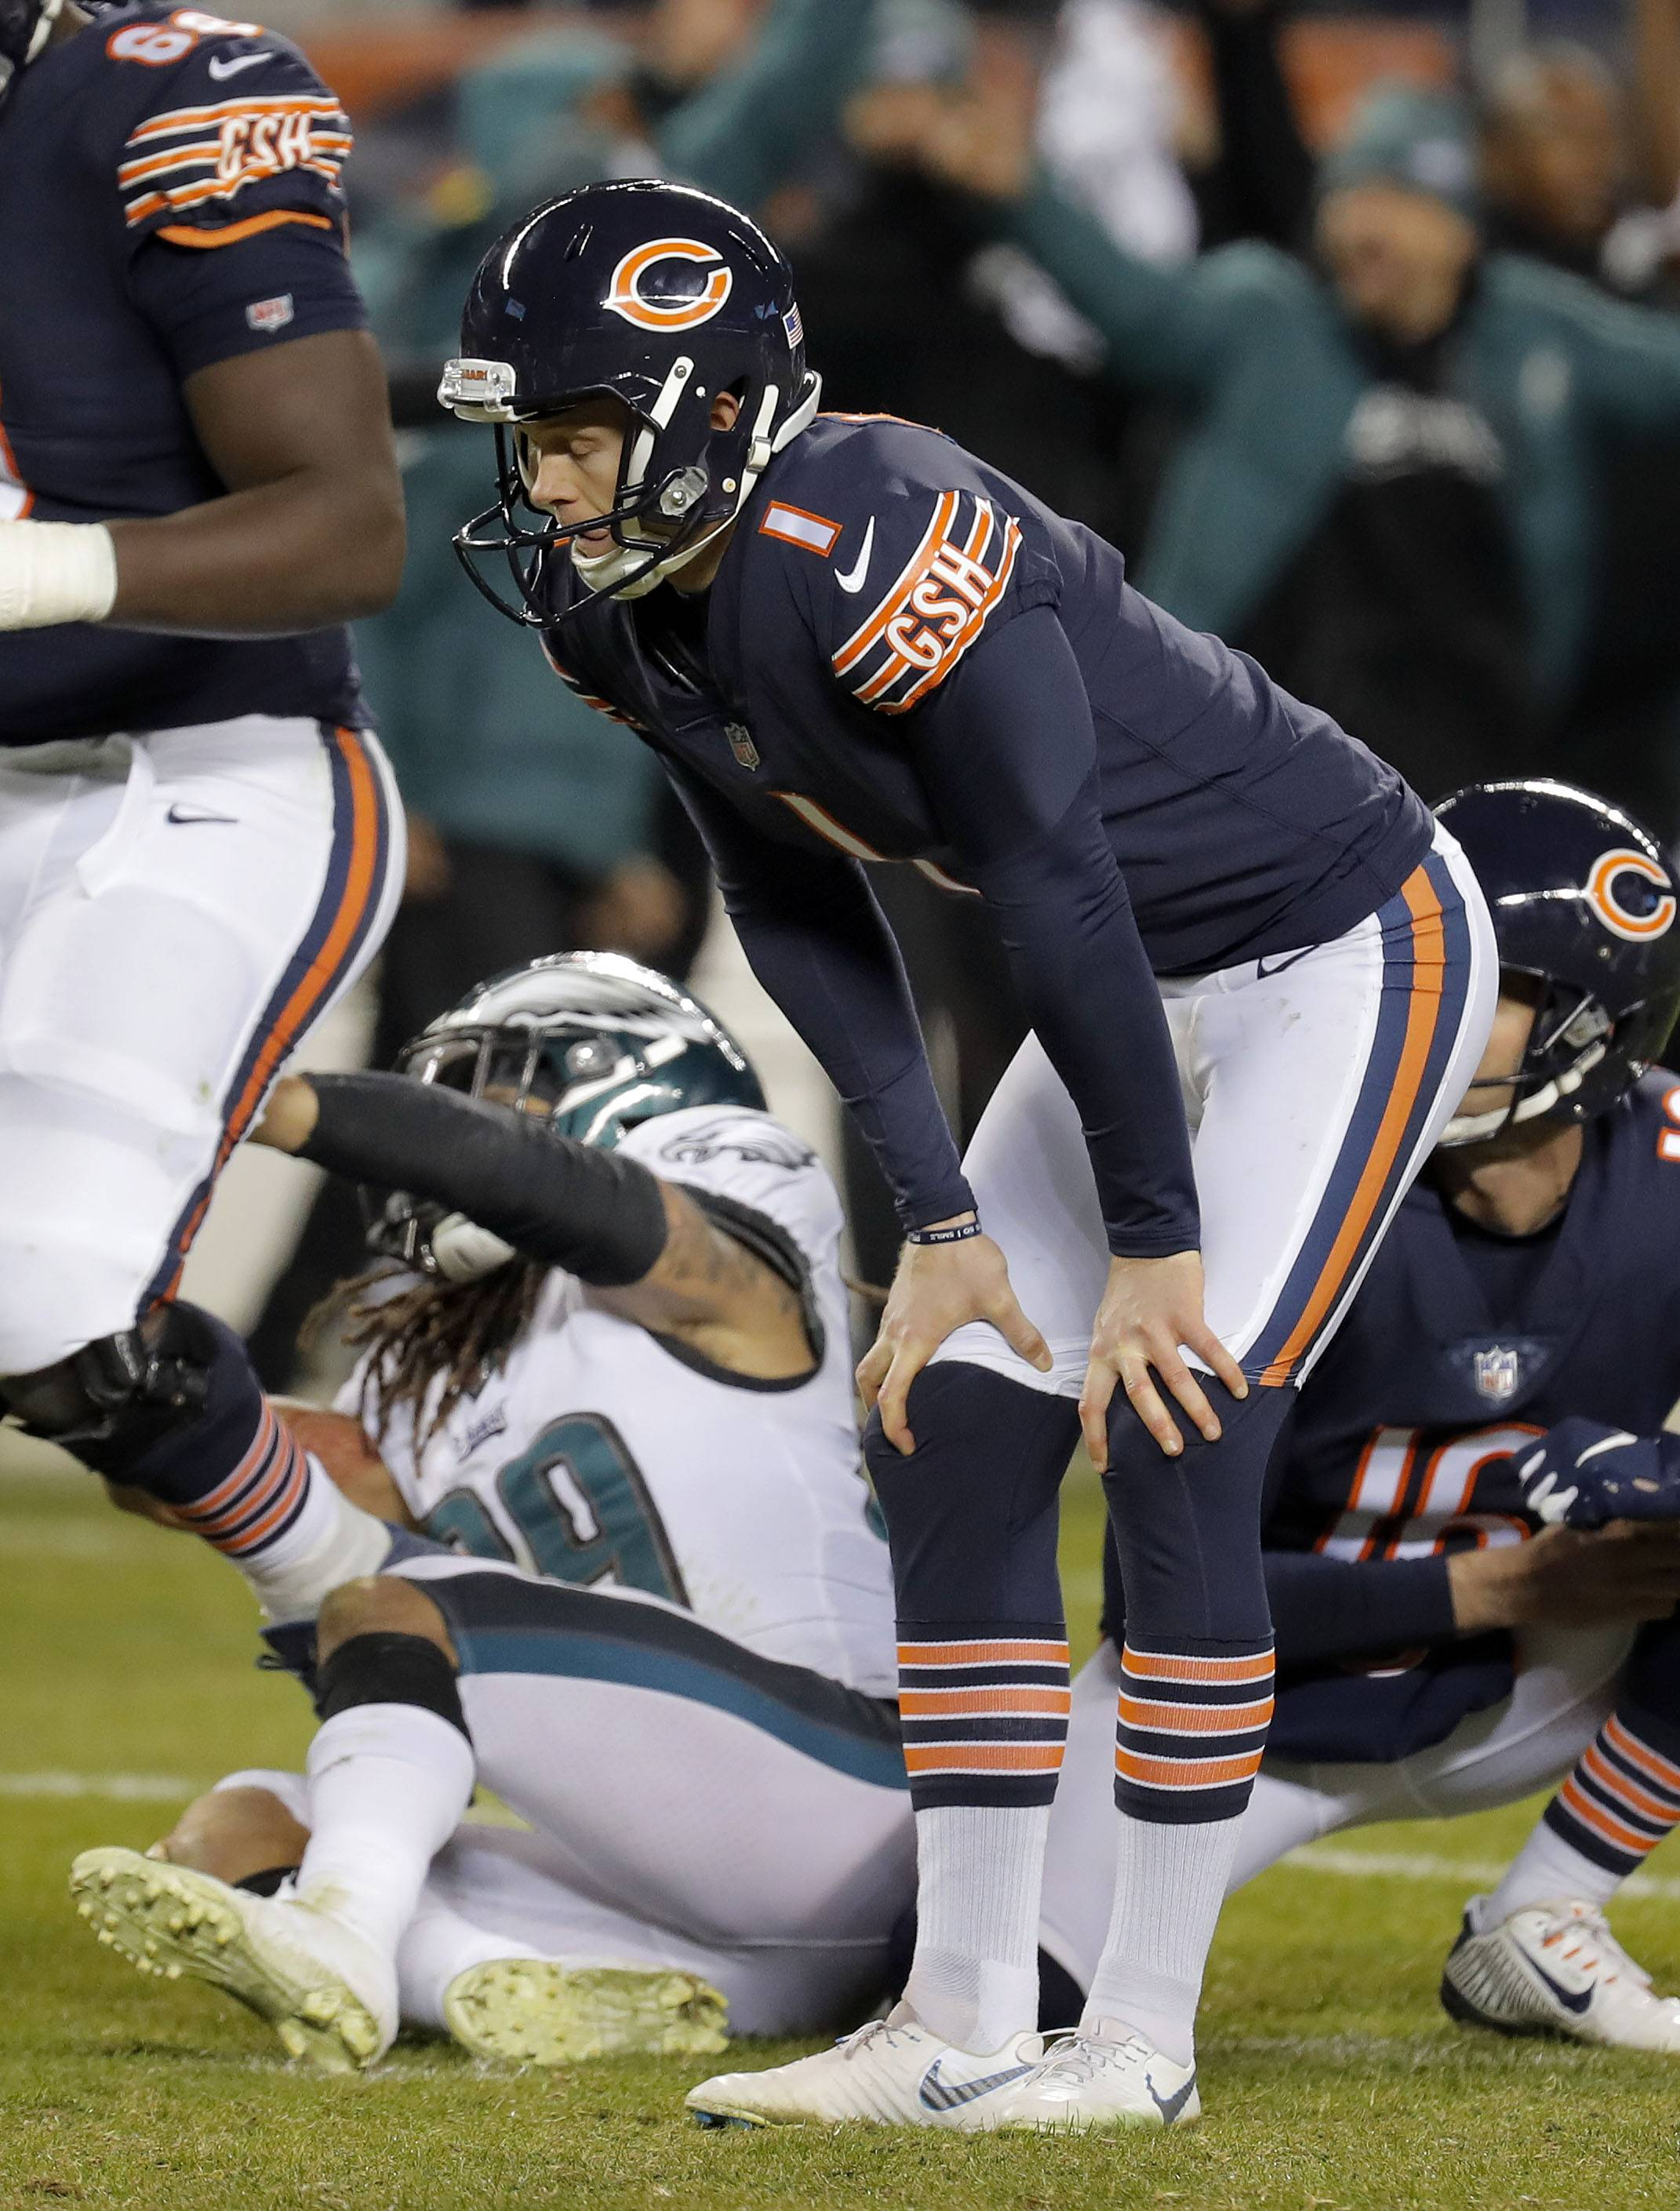 Chicago Bears kicker Cody Parkey reacts after missing a field goal during the Bears loss to the Eagles 16-15 in the NFC wild card game Sunday, January 6, 2019 at Soldier Field in Chicago.